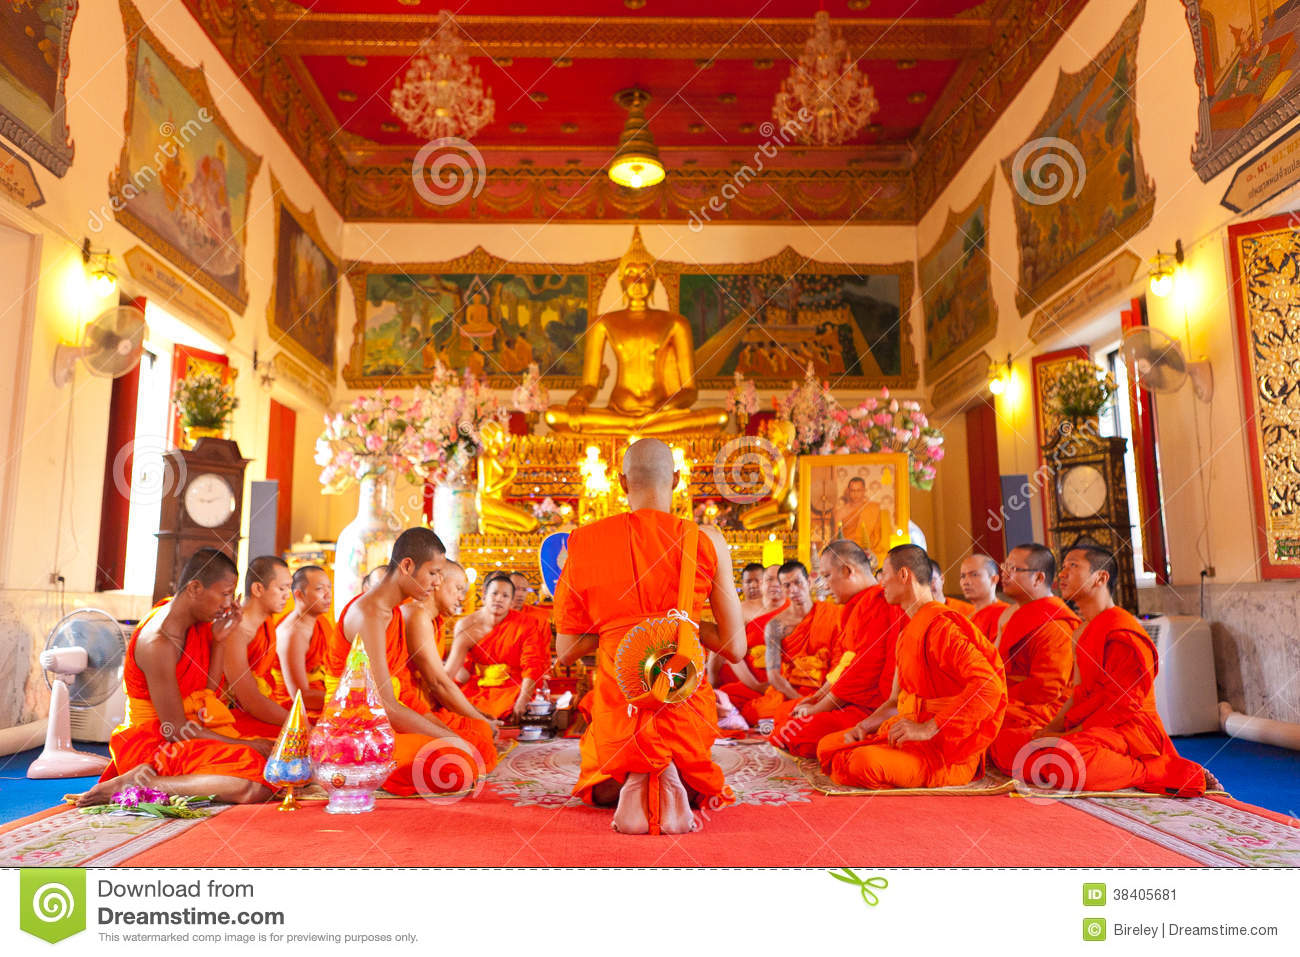 atlanta marketing consulting firms top job searching sites lighting ordain into monkhood ceremony editorial photo image 38405681